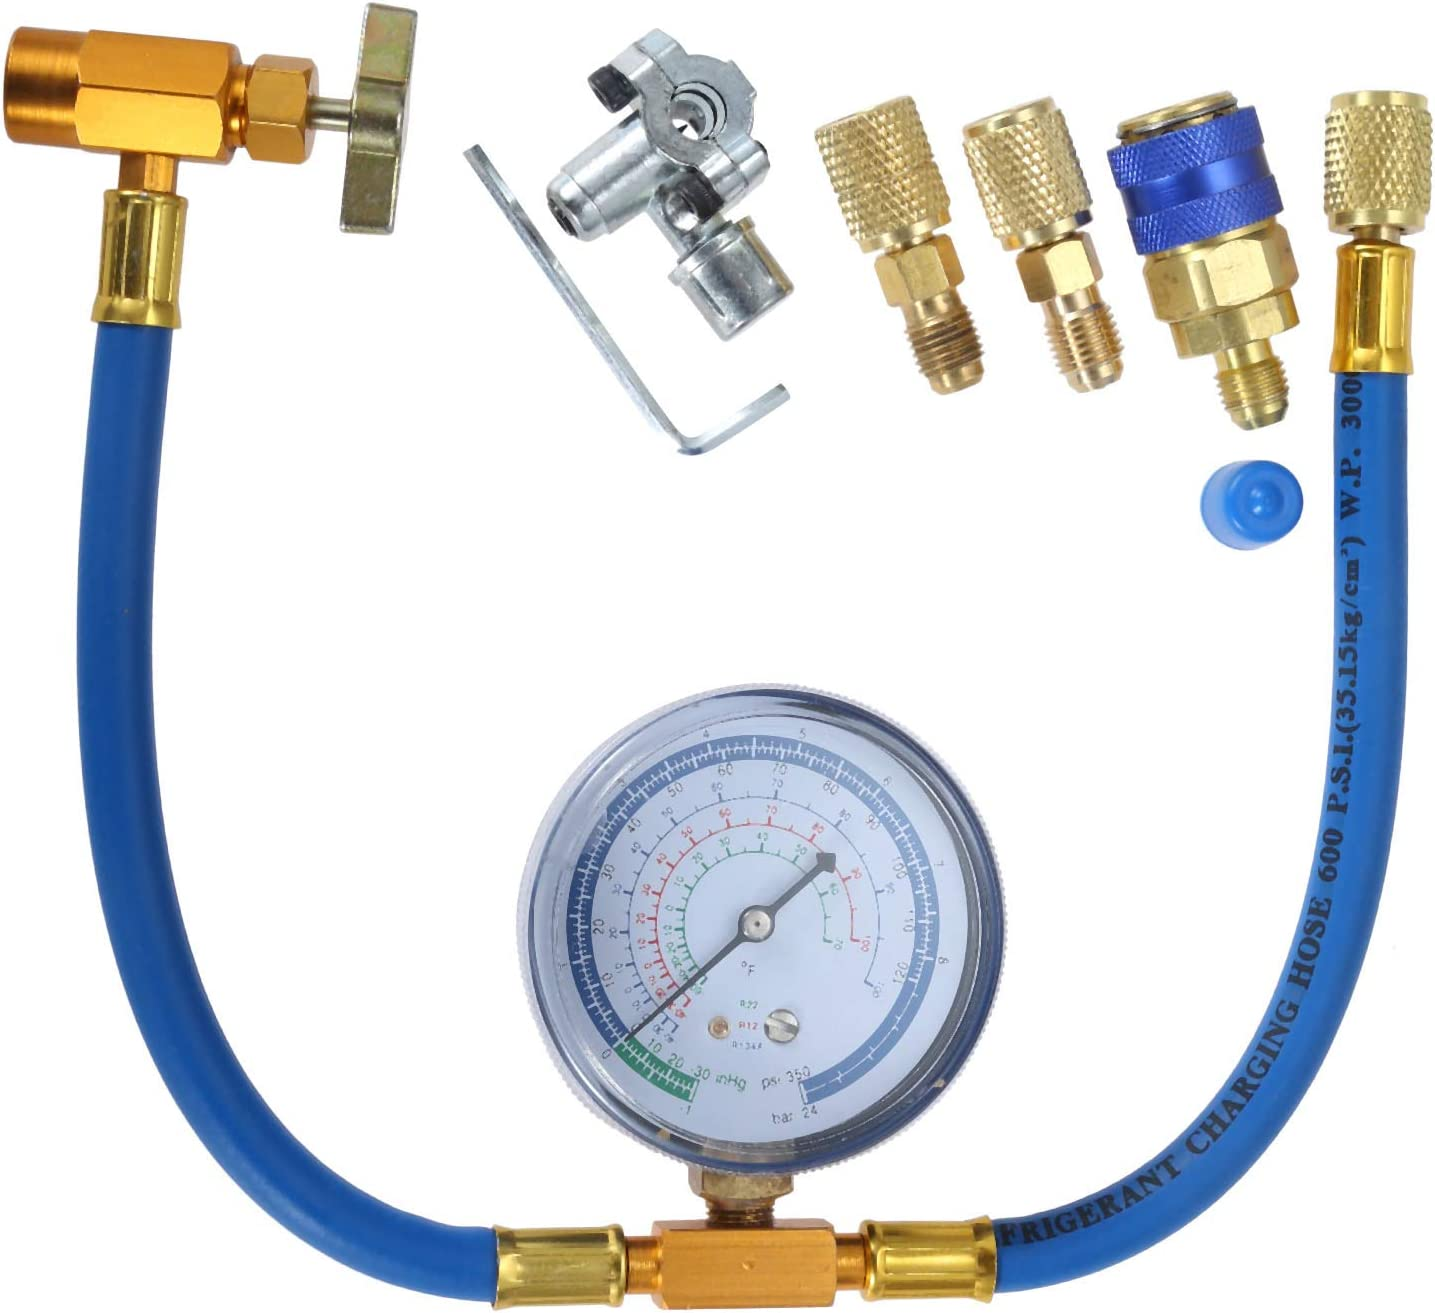 """Refrigerant R134a Can Tap to R-12//R-22 Port 1//4 Male Connector Kit and BPV31 Piercing Valve with 2.75/"""" Air Conditioning Gauge Removable R134a Quick Couple R134a Charging Hose to Refrigerator"""